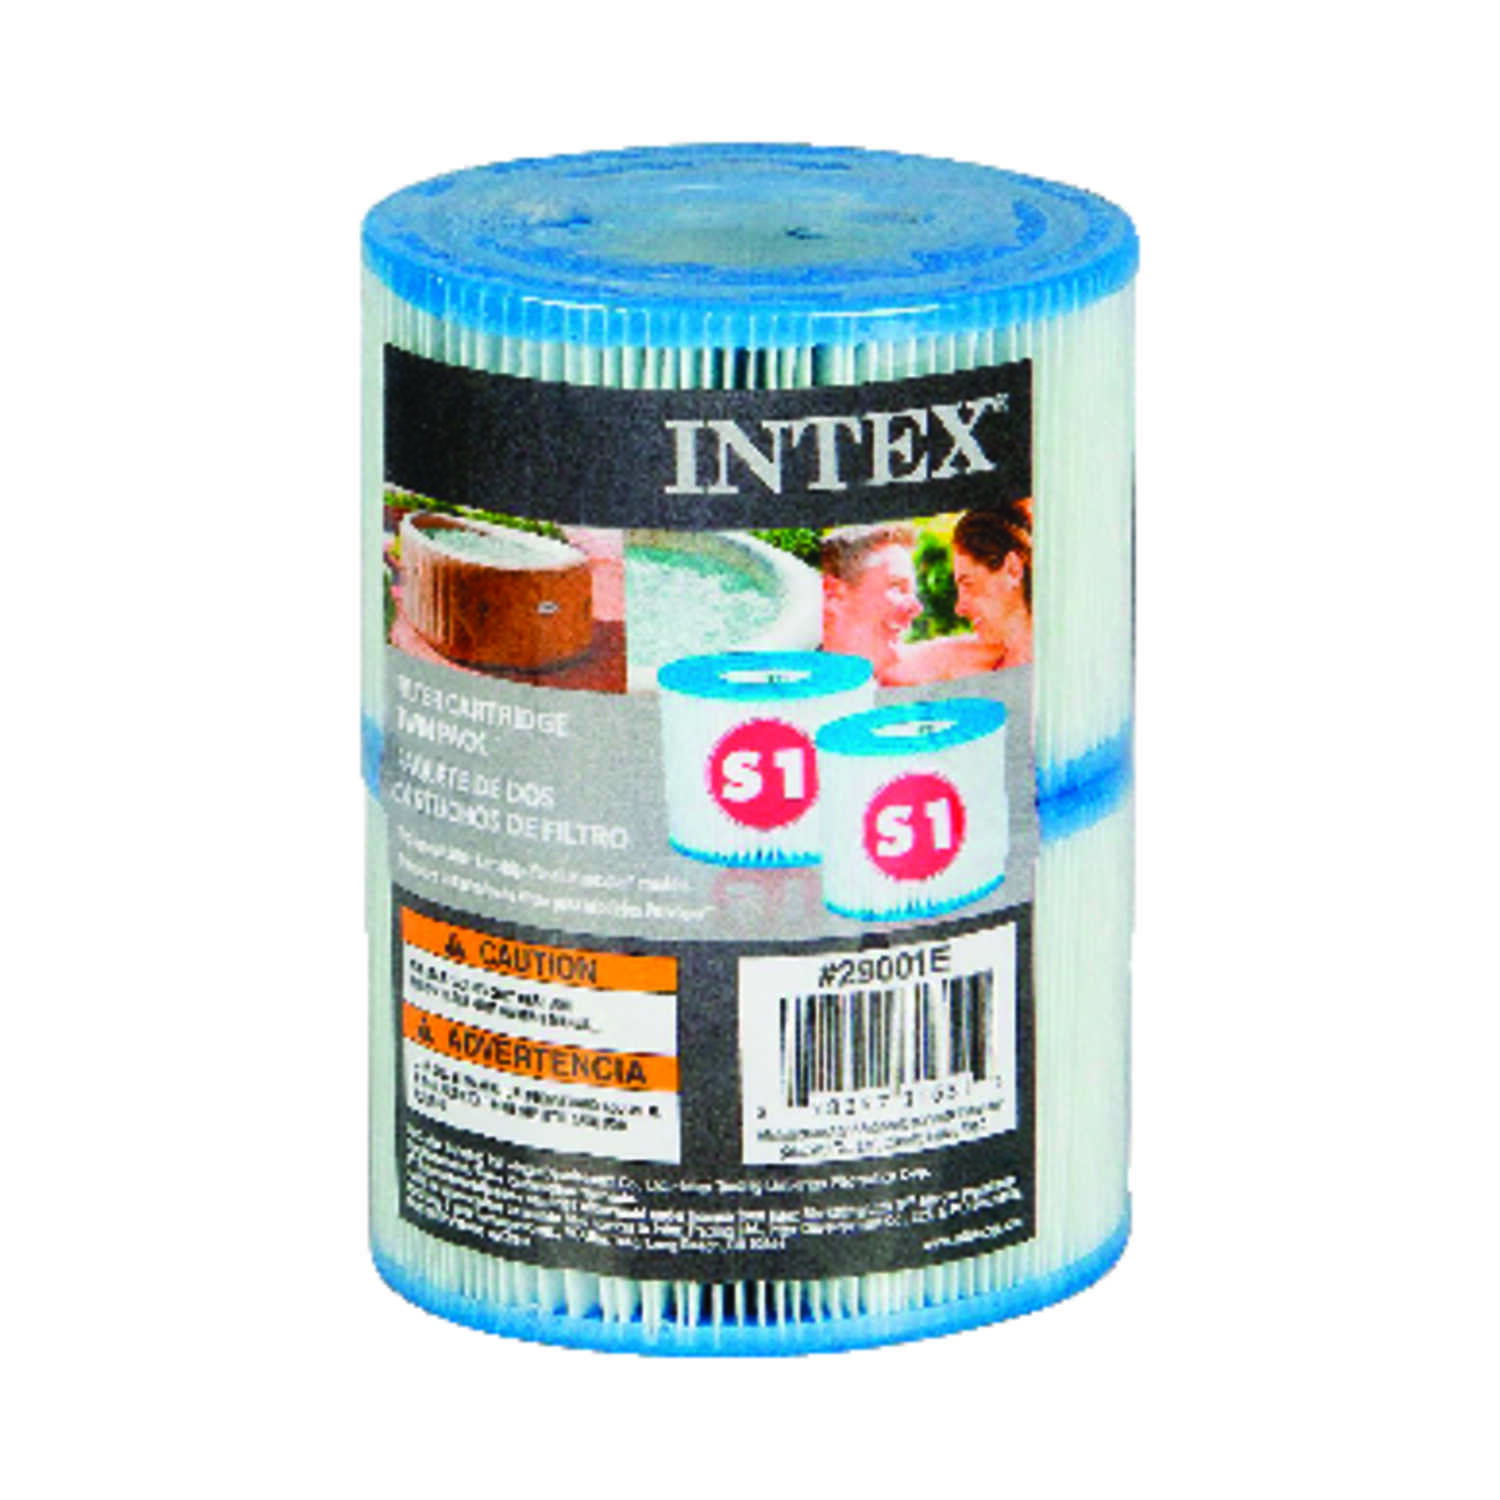 Intex  Pool Filter  2.8 in. H x 4.25 in. W x 4.25 in. L